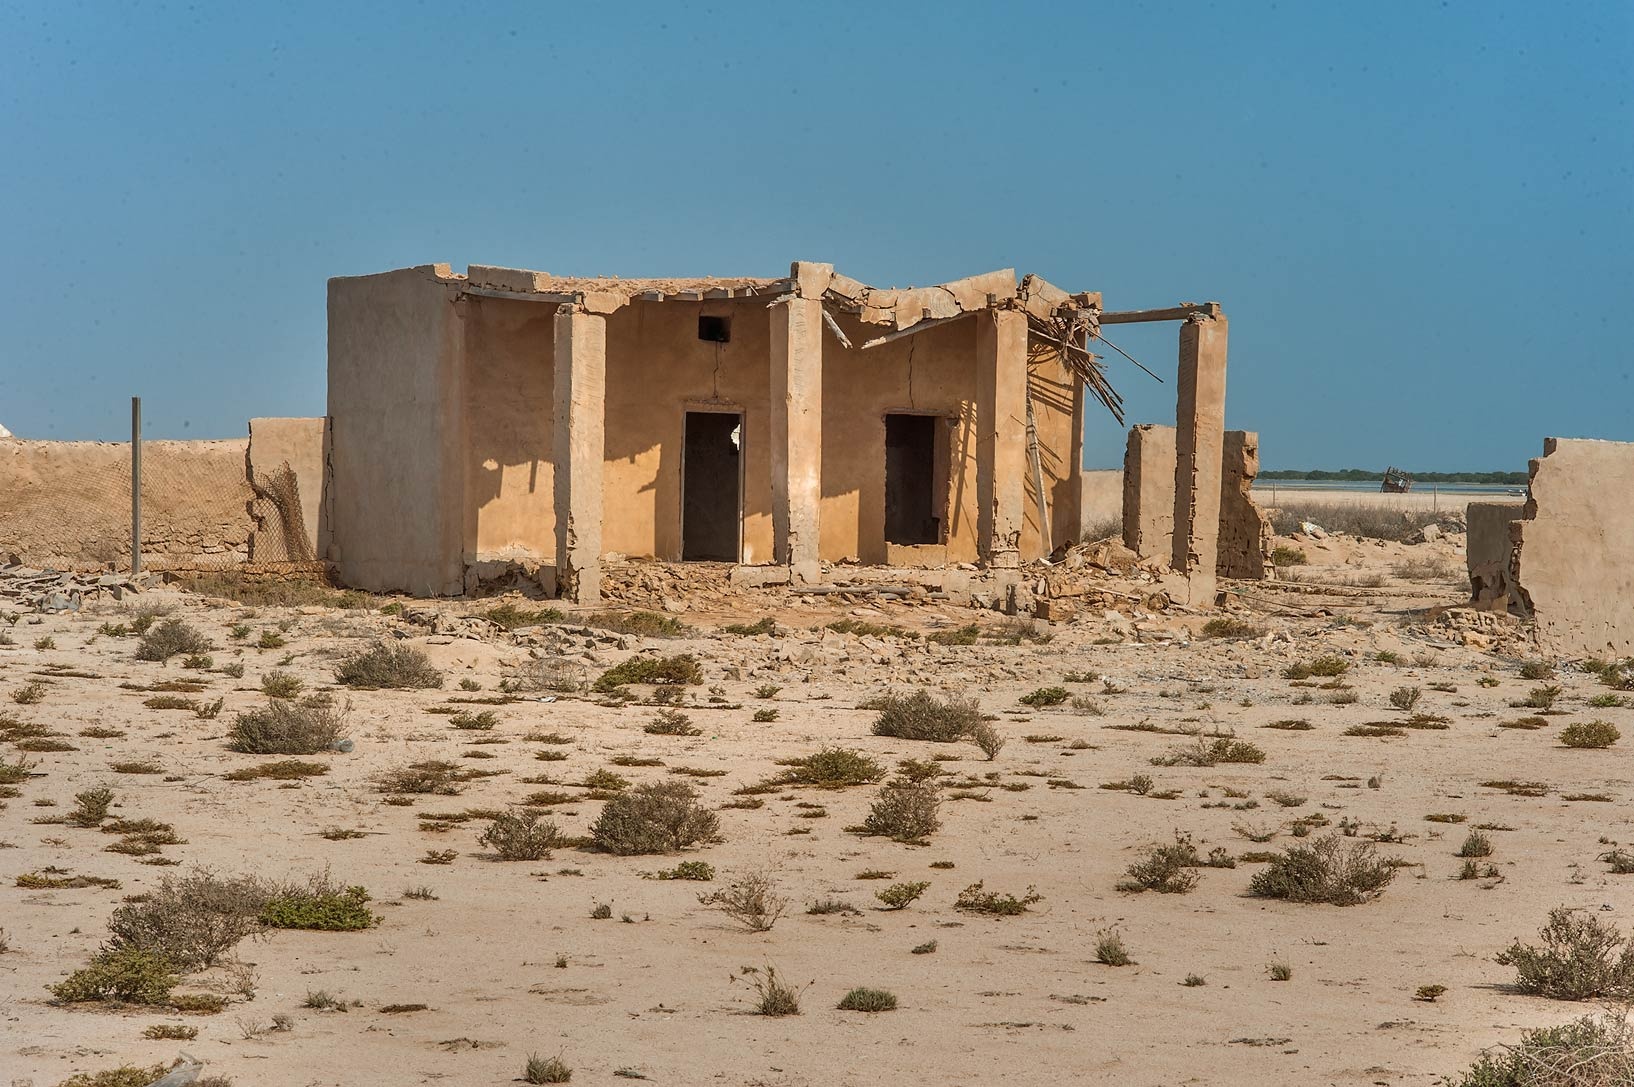 Traditional columned peristyle (liwan) in a...coast in Madinat Al Shamal area. Qatar